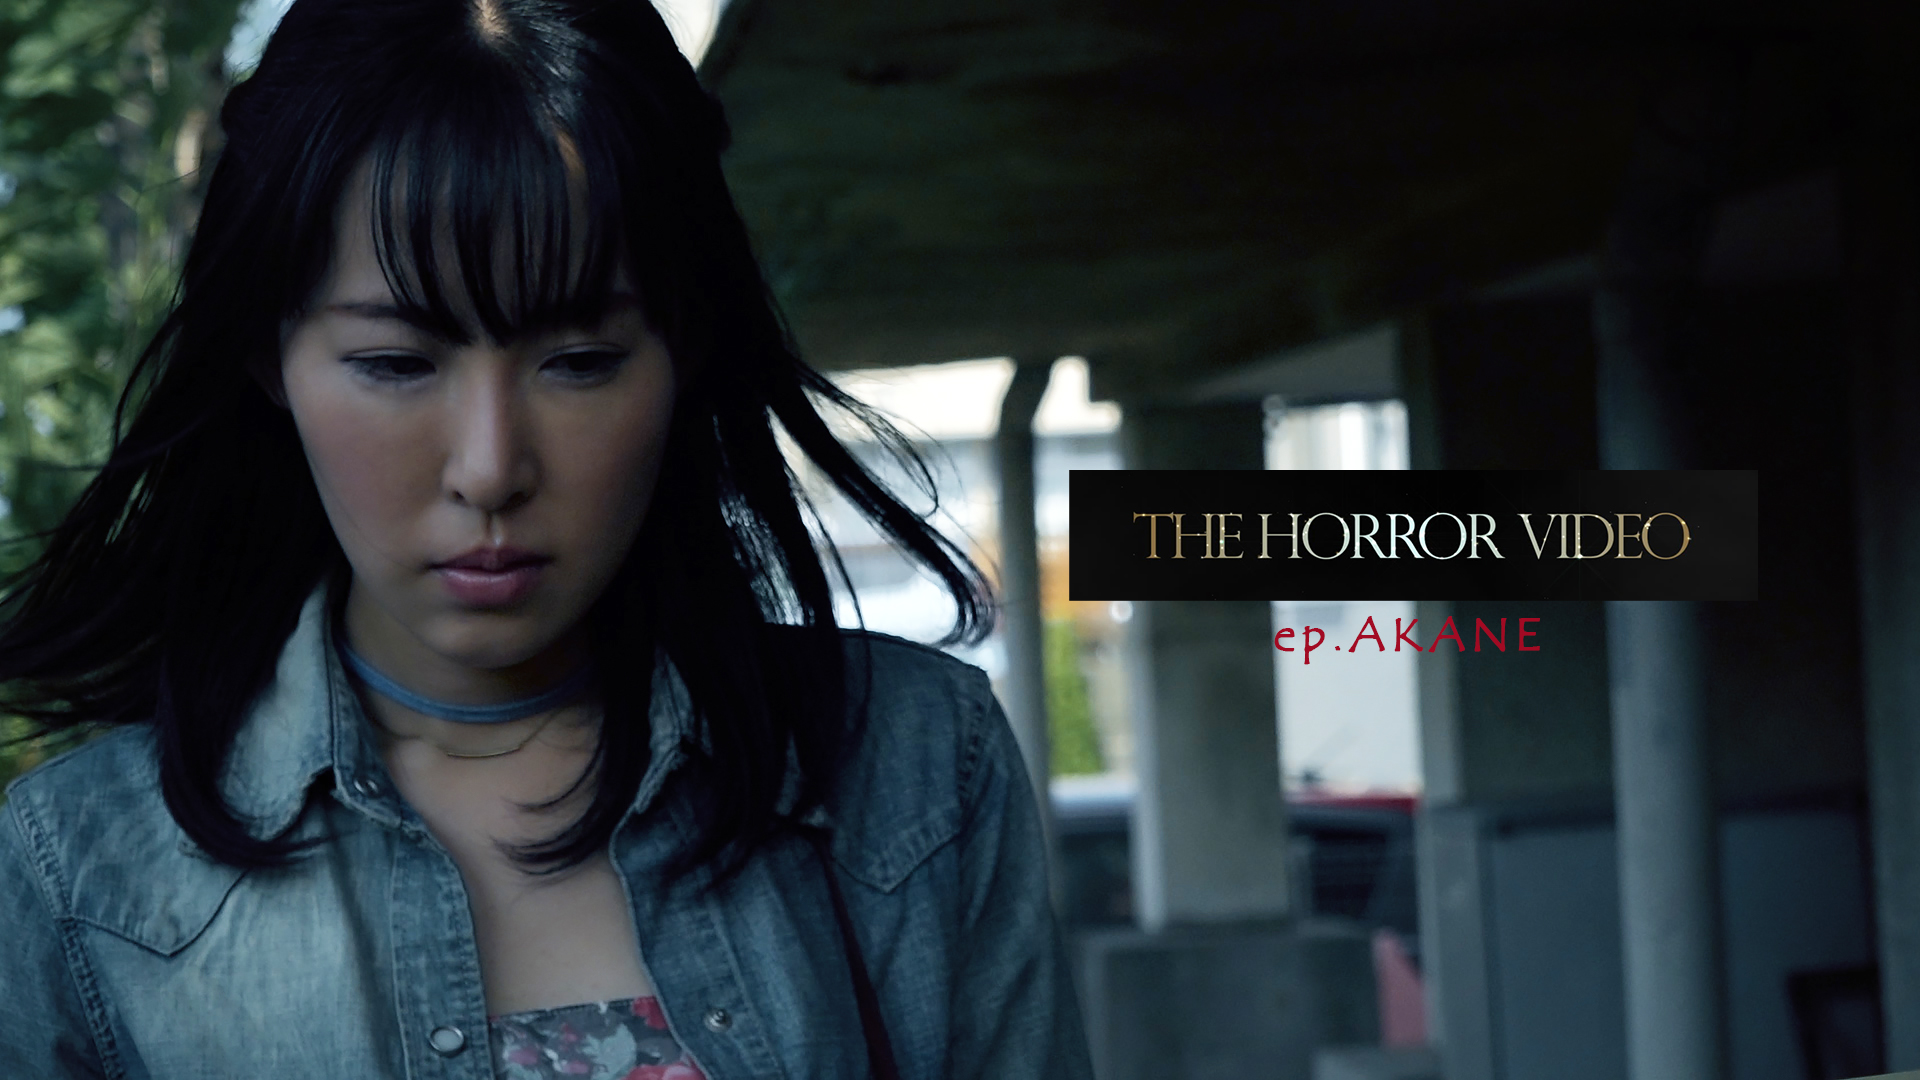 THE HORROR VIDEO ep.2